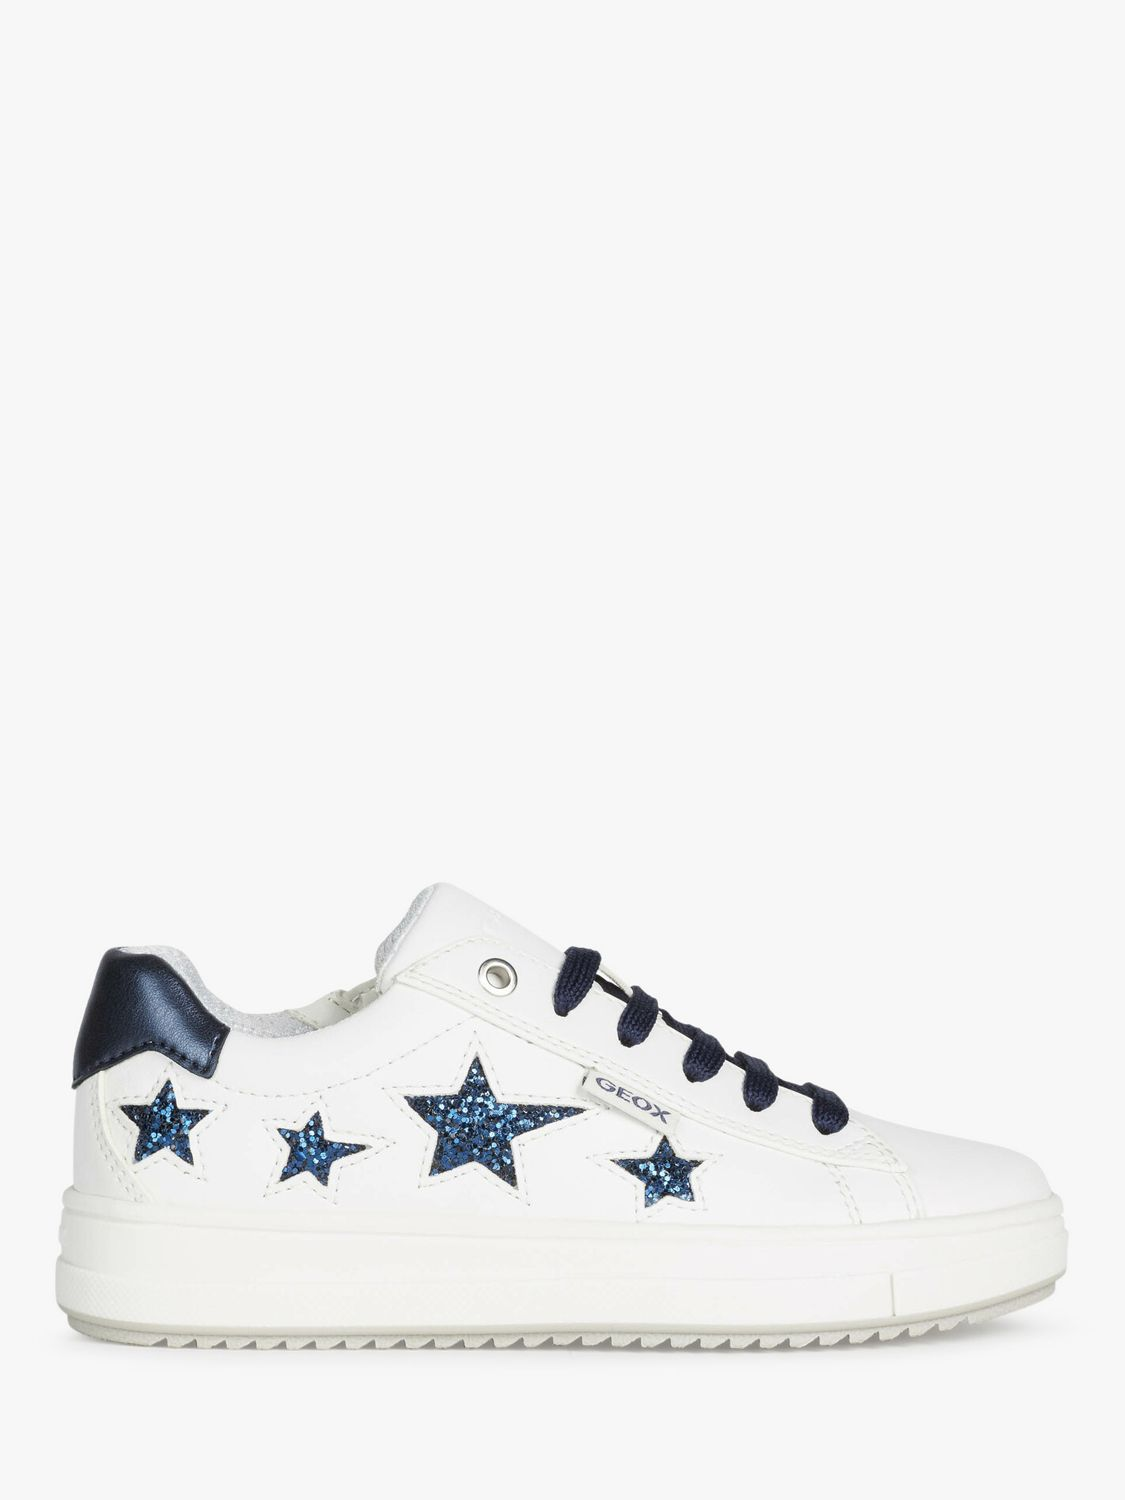 Geox Geox Children's Rebecca Star Trainers, White/Navy